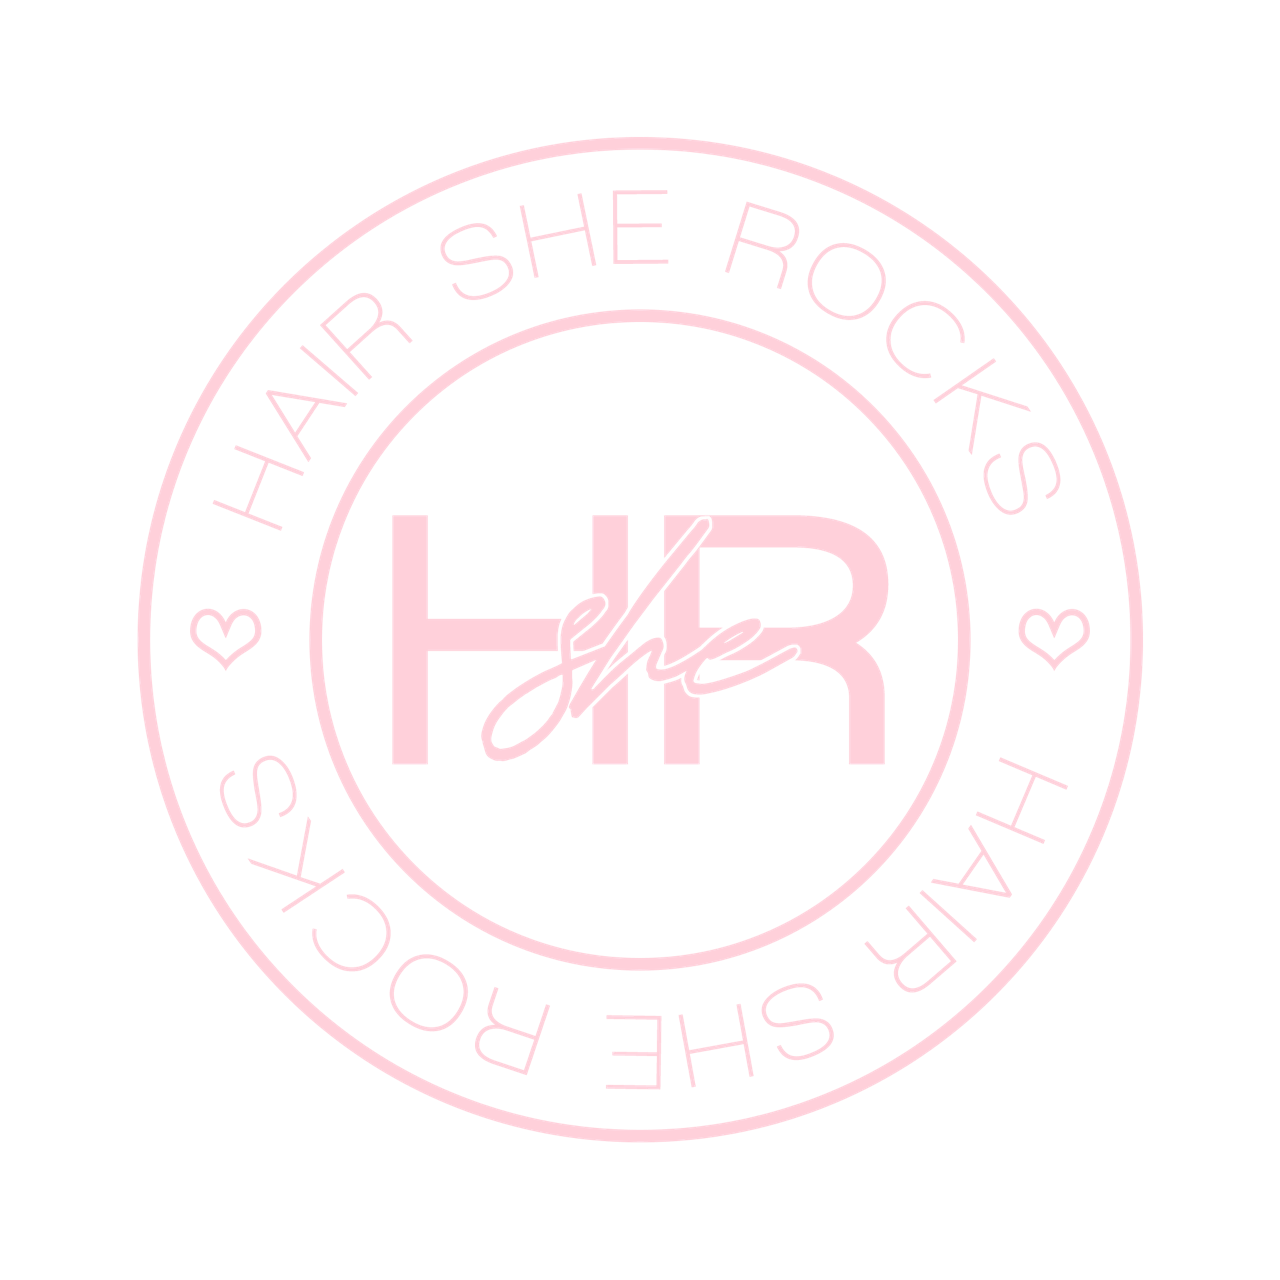 hairsherocks1